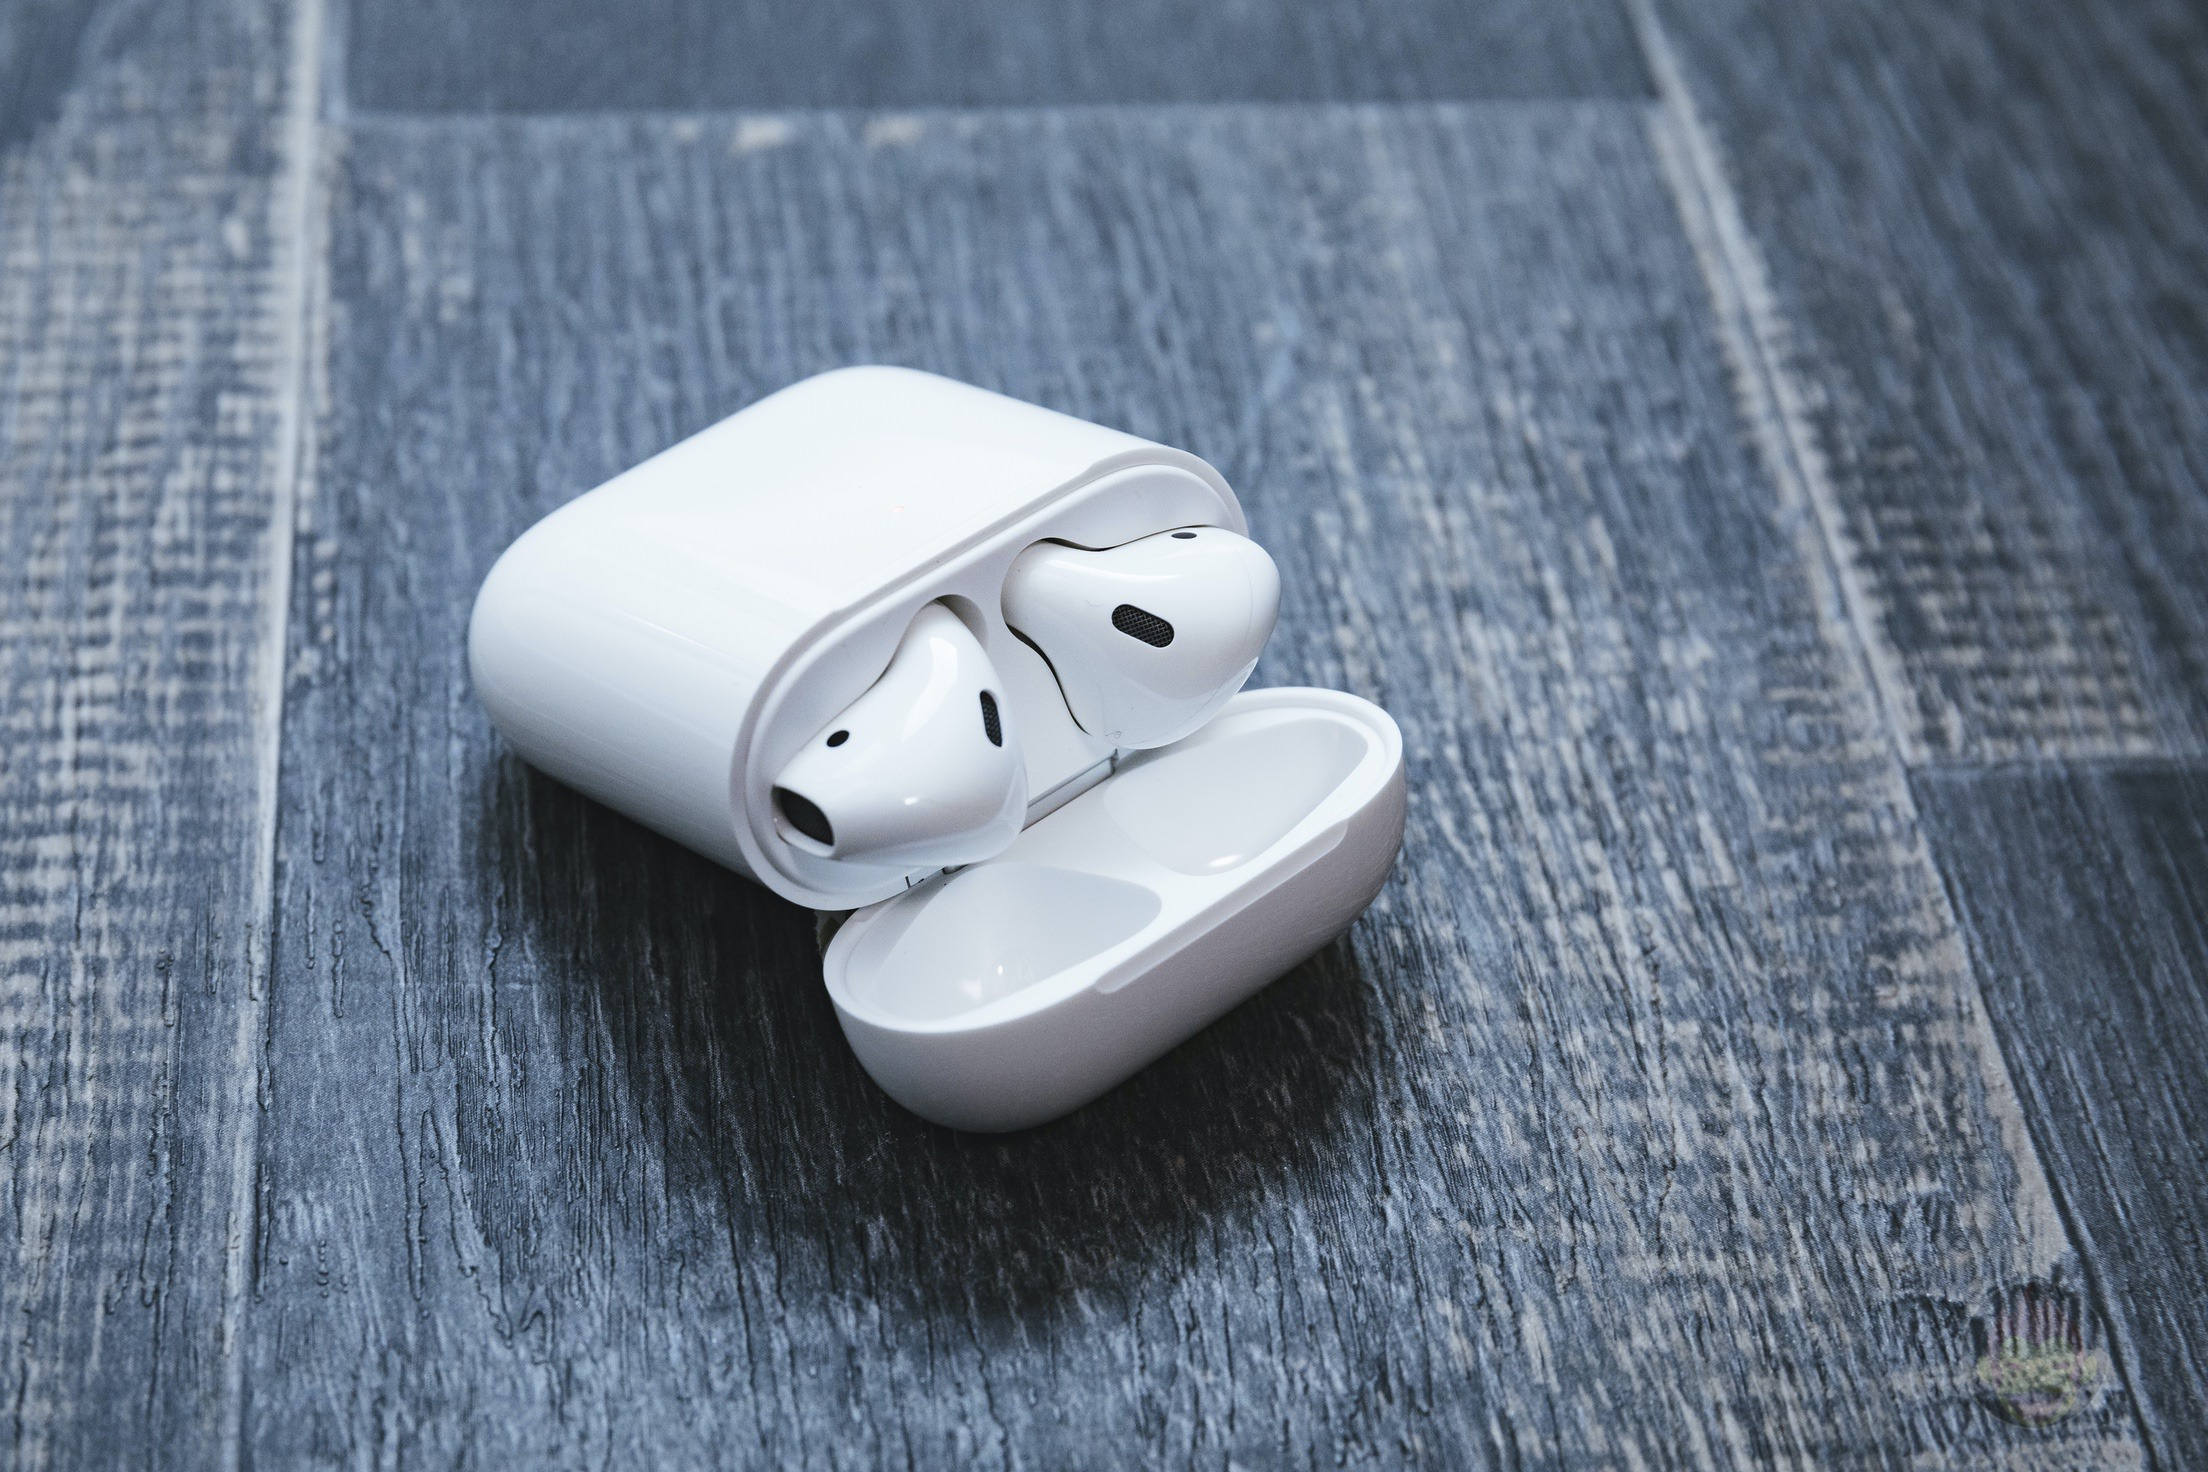 AirPods-2nd-Generation-2019-Review-06.jpg